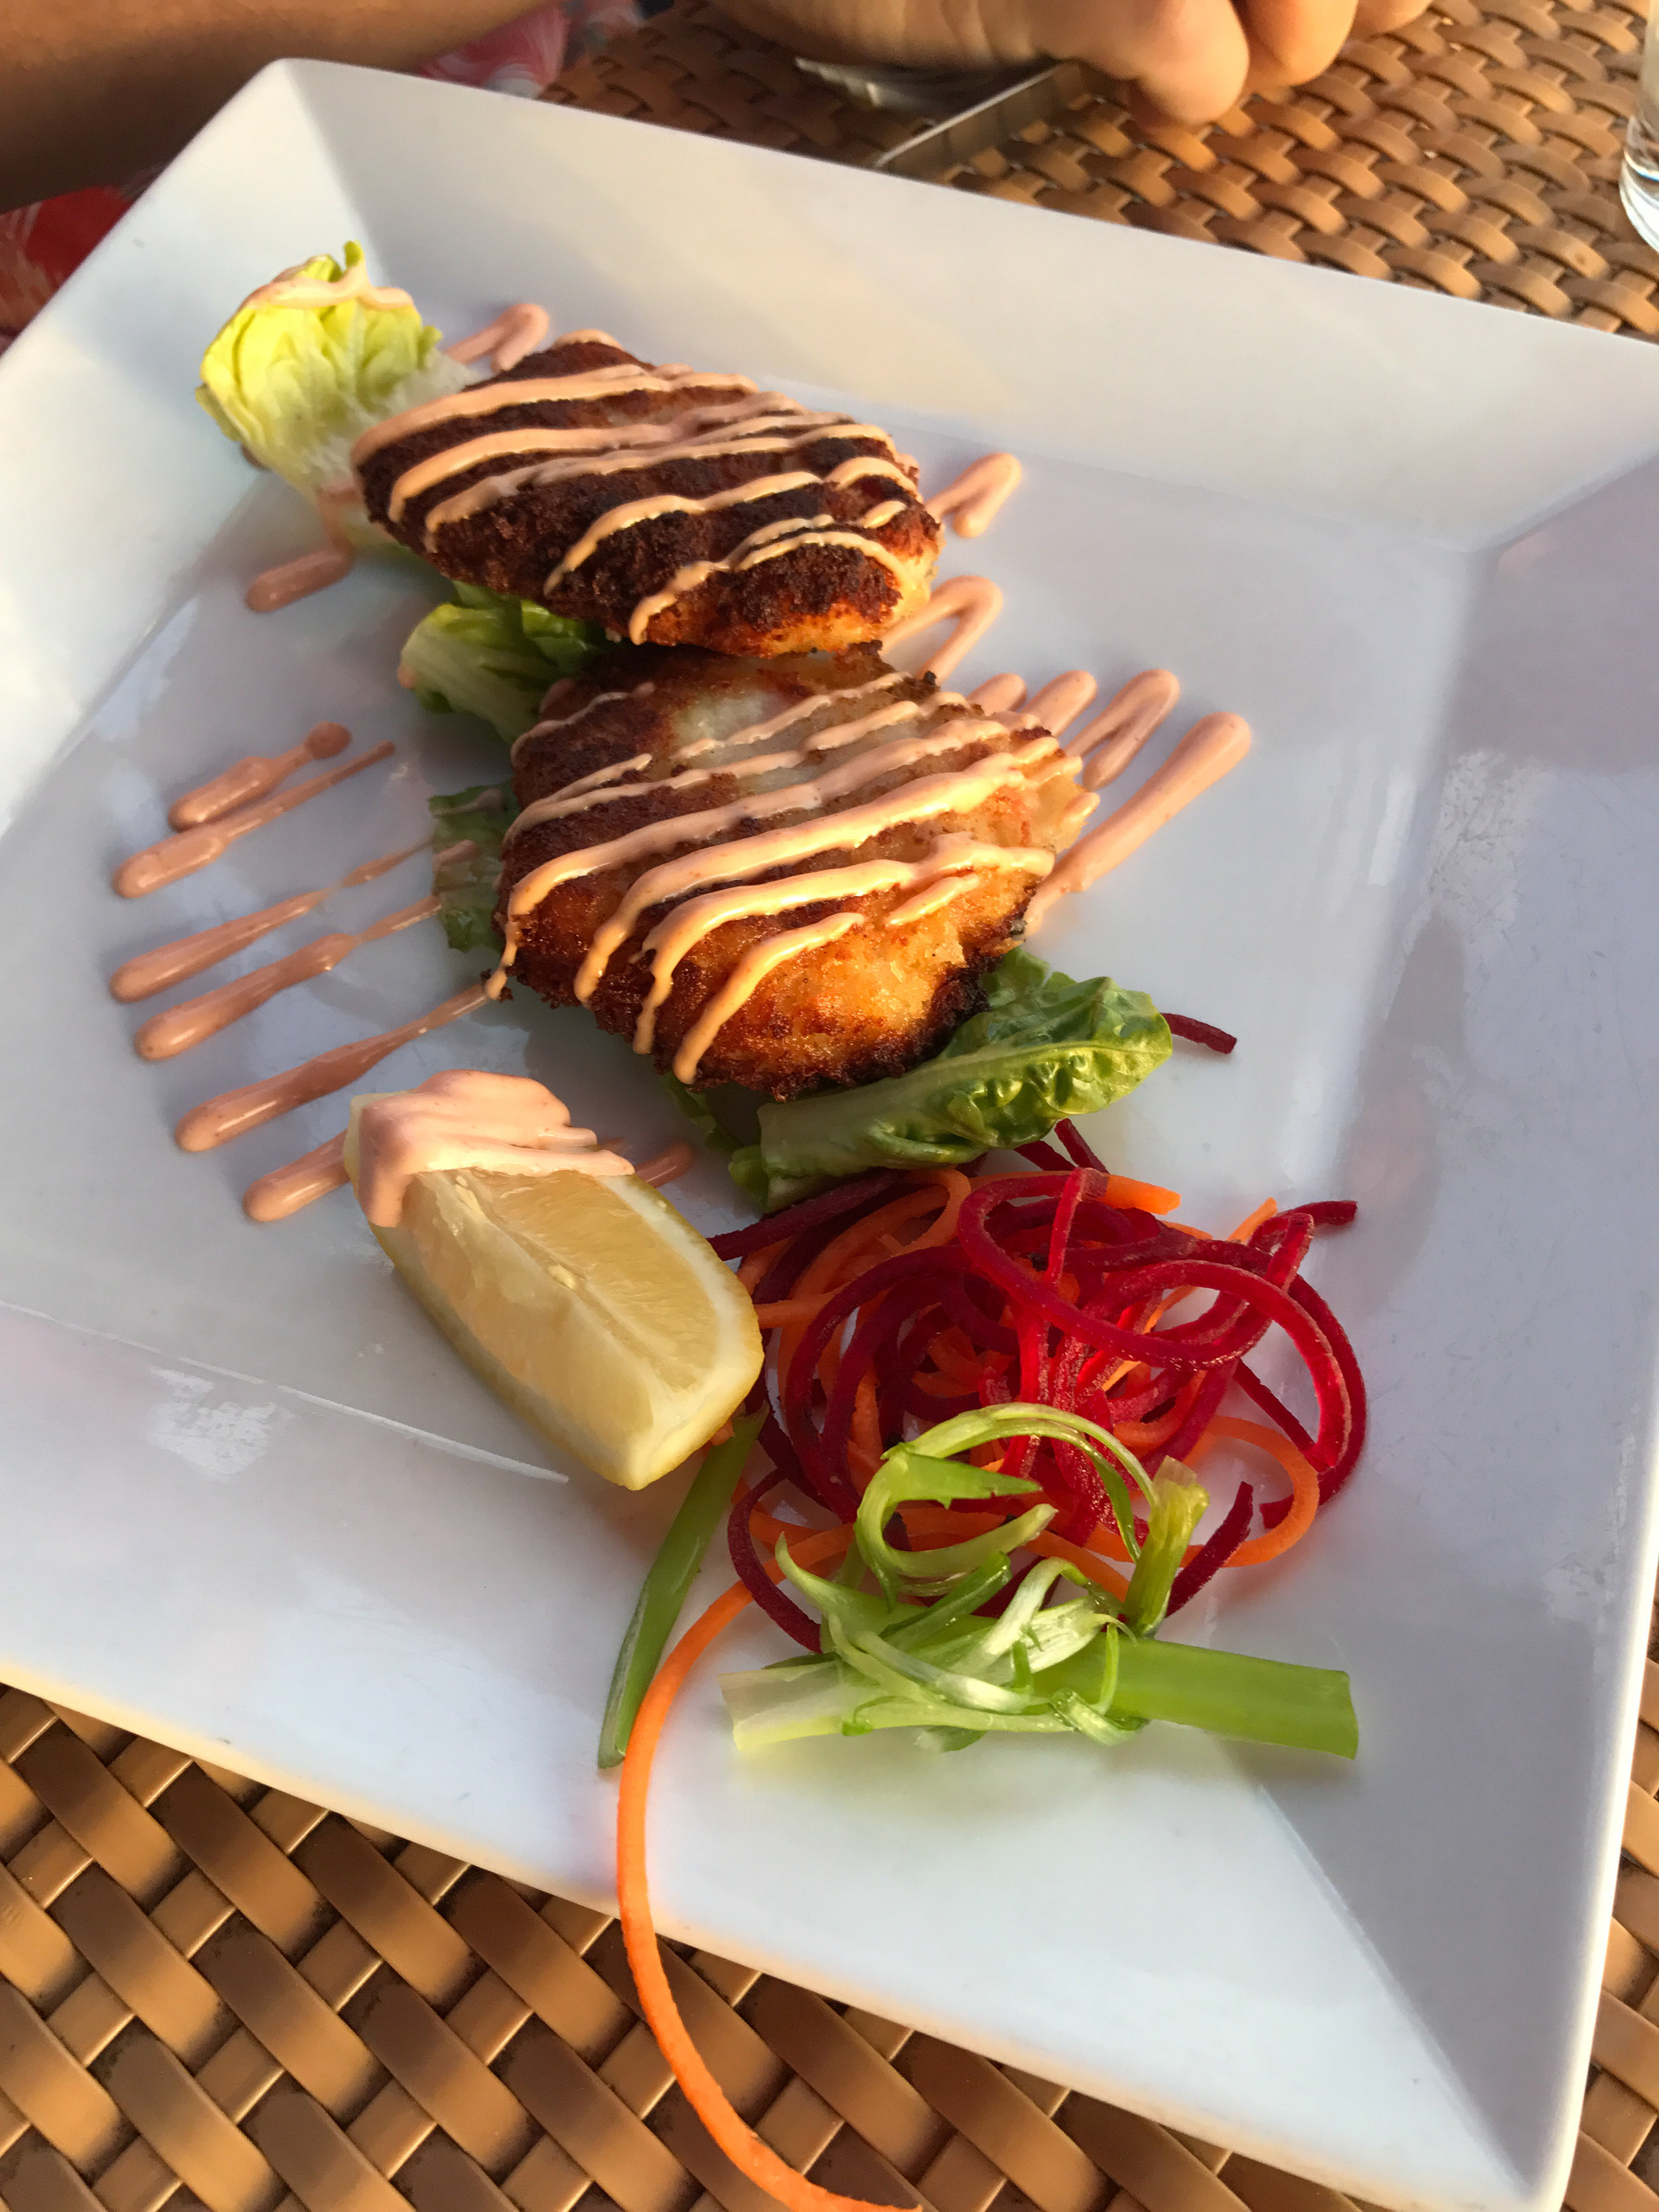 If you love seafood everyone on the island has amazing dishes -These are lobster cakes!